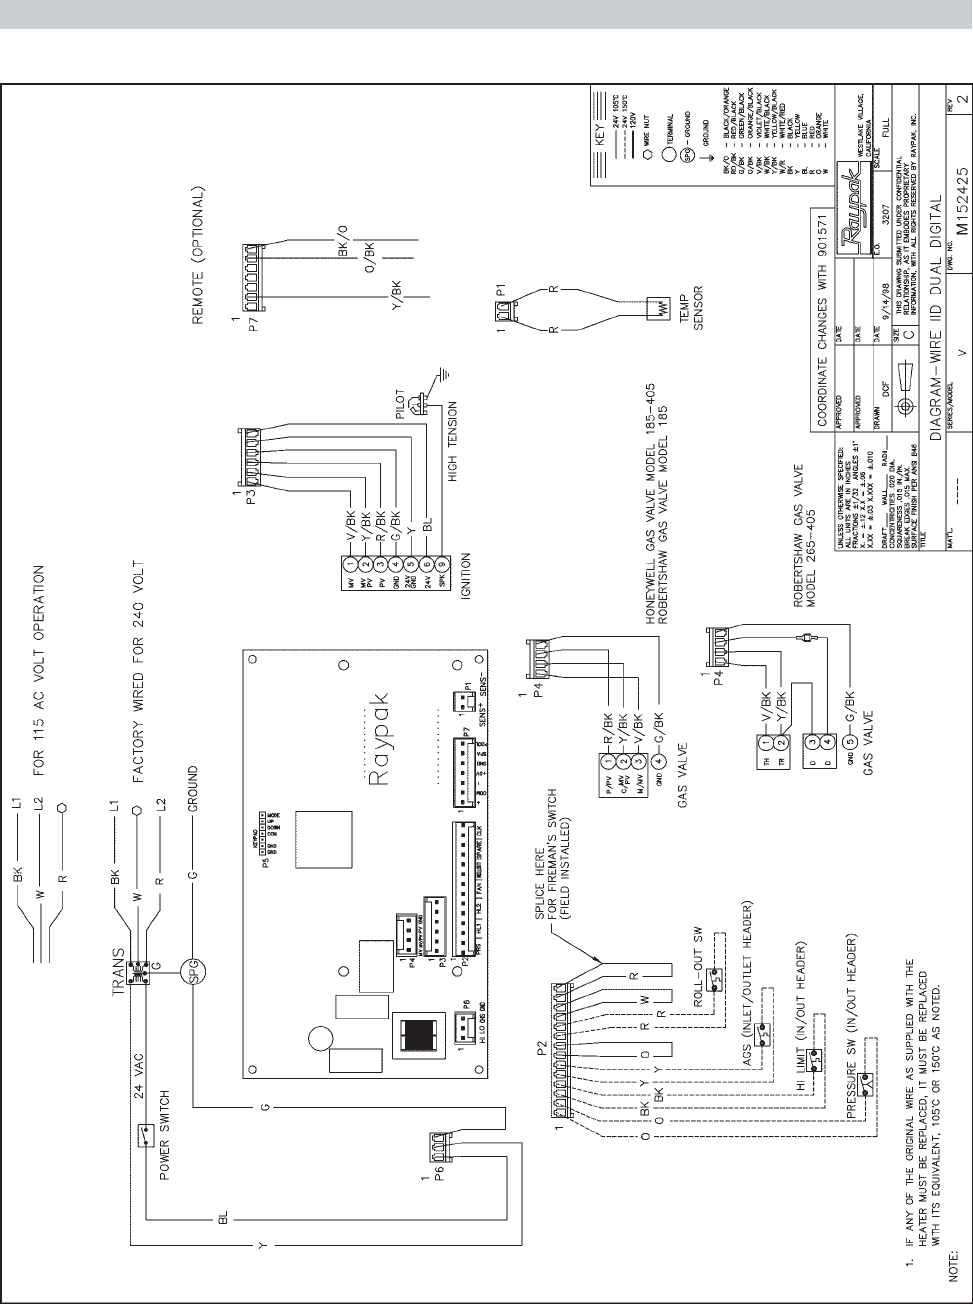 c781a38e 3a6e 4dbc 83db b3c03d45ca16 bg17 page 23 of raypak swimming pool heater rp2100 user guide raypak 2100 wiring diagram at gsmx.co